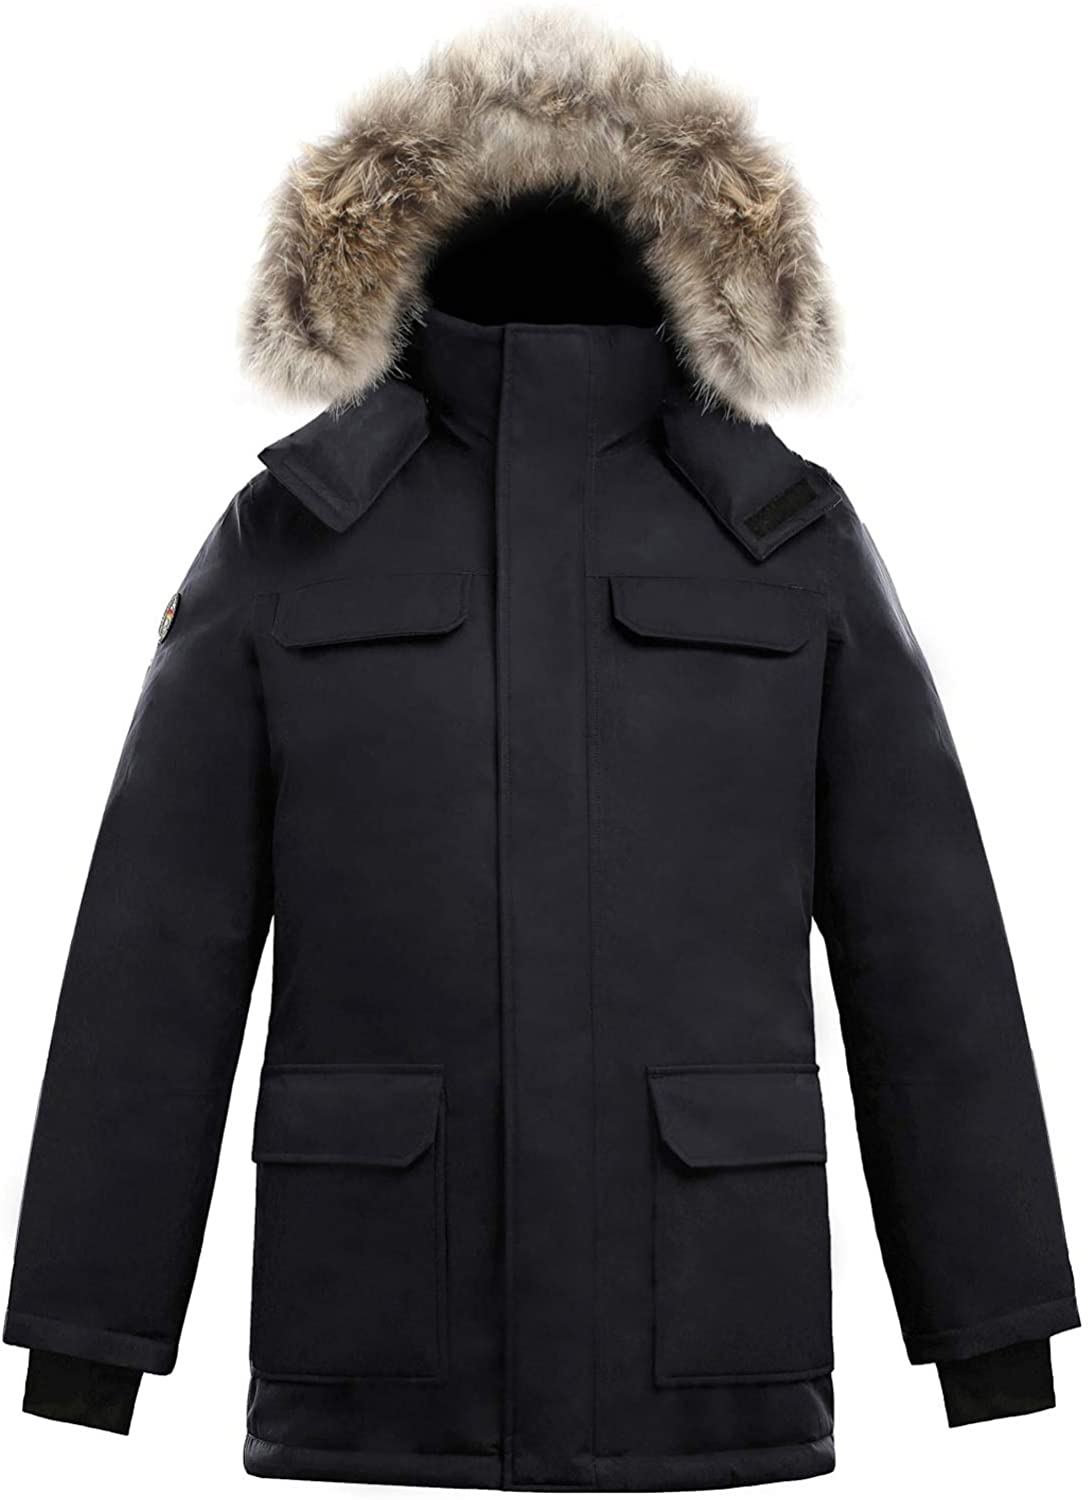 Triple F.A.T. Goose Aisen Collection | Chenega II Waterproof Mens Down Jacket